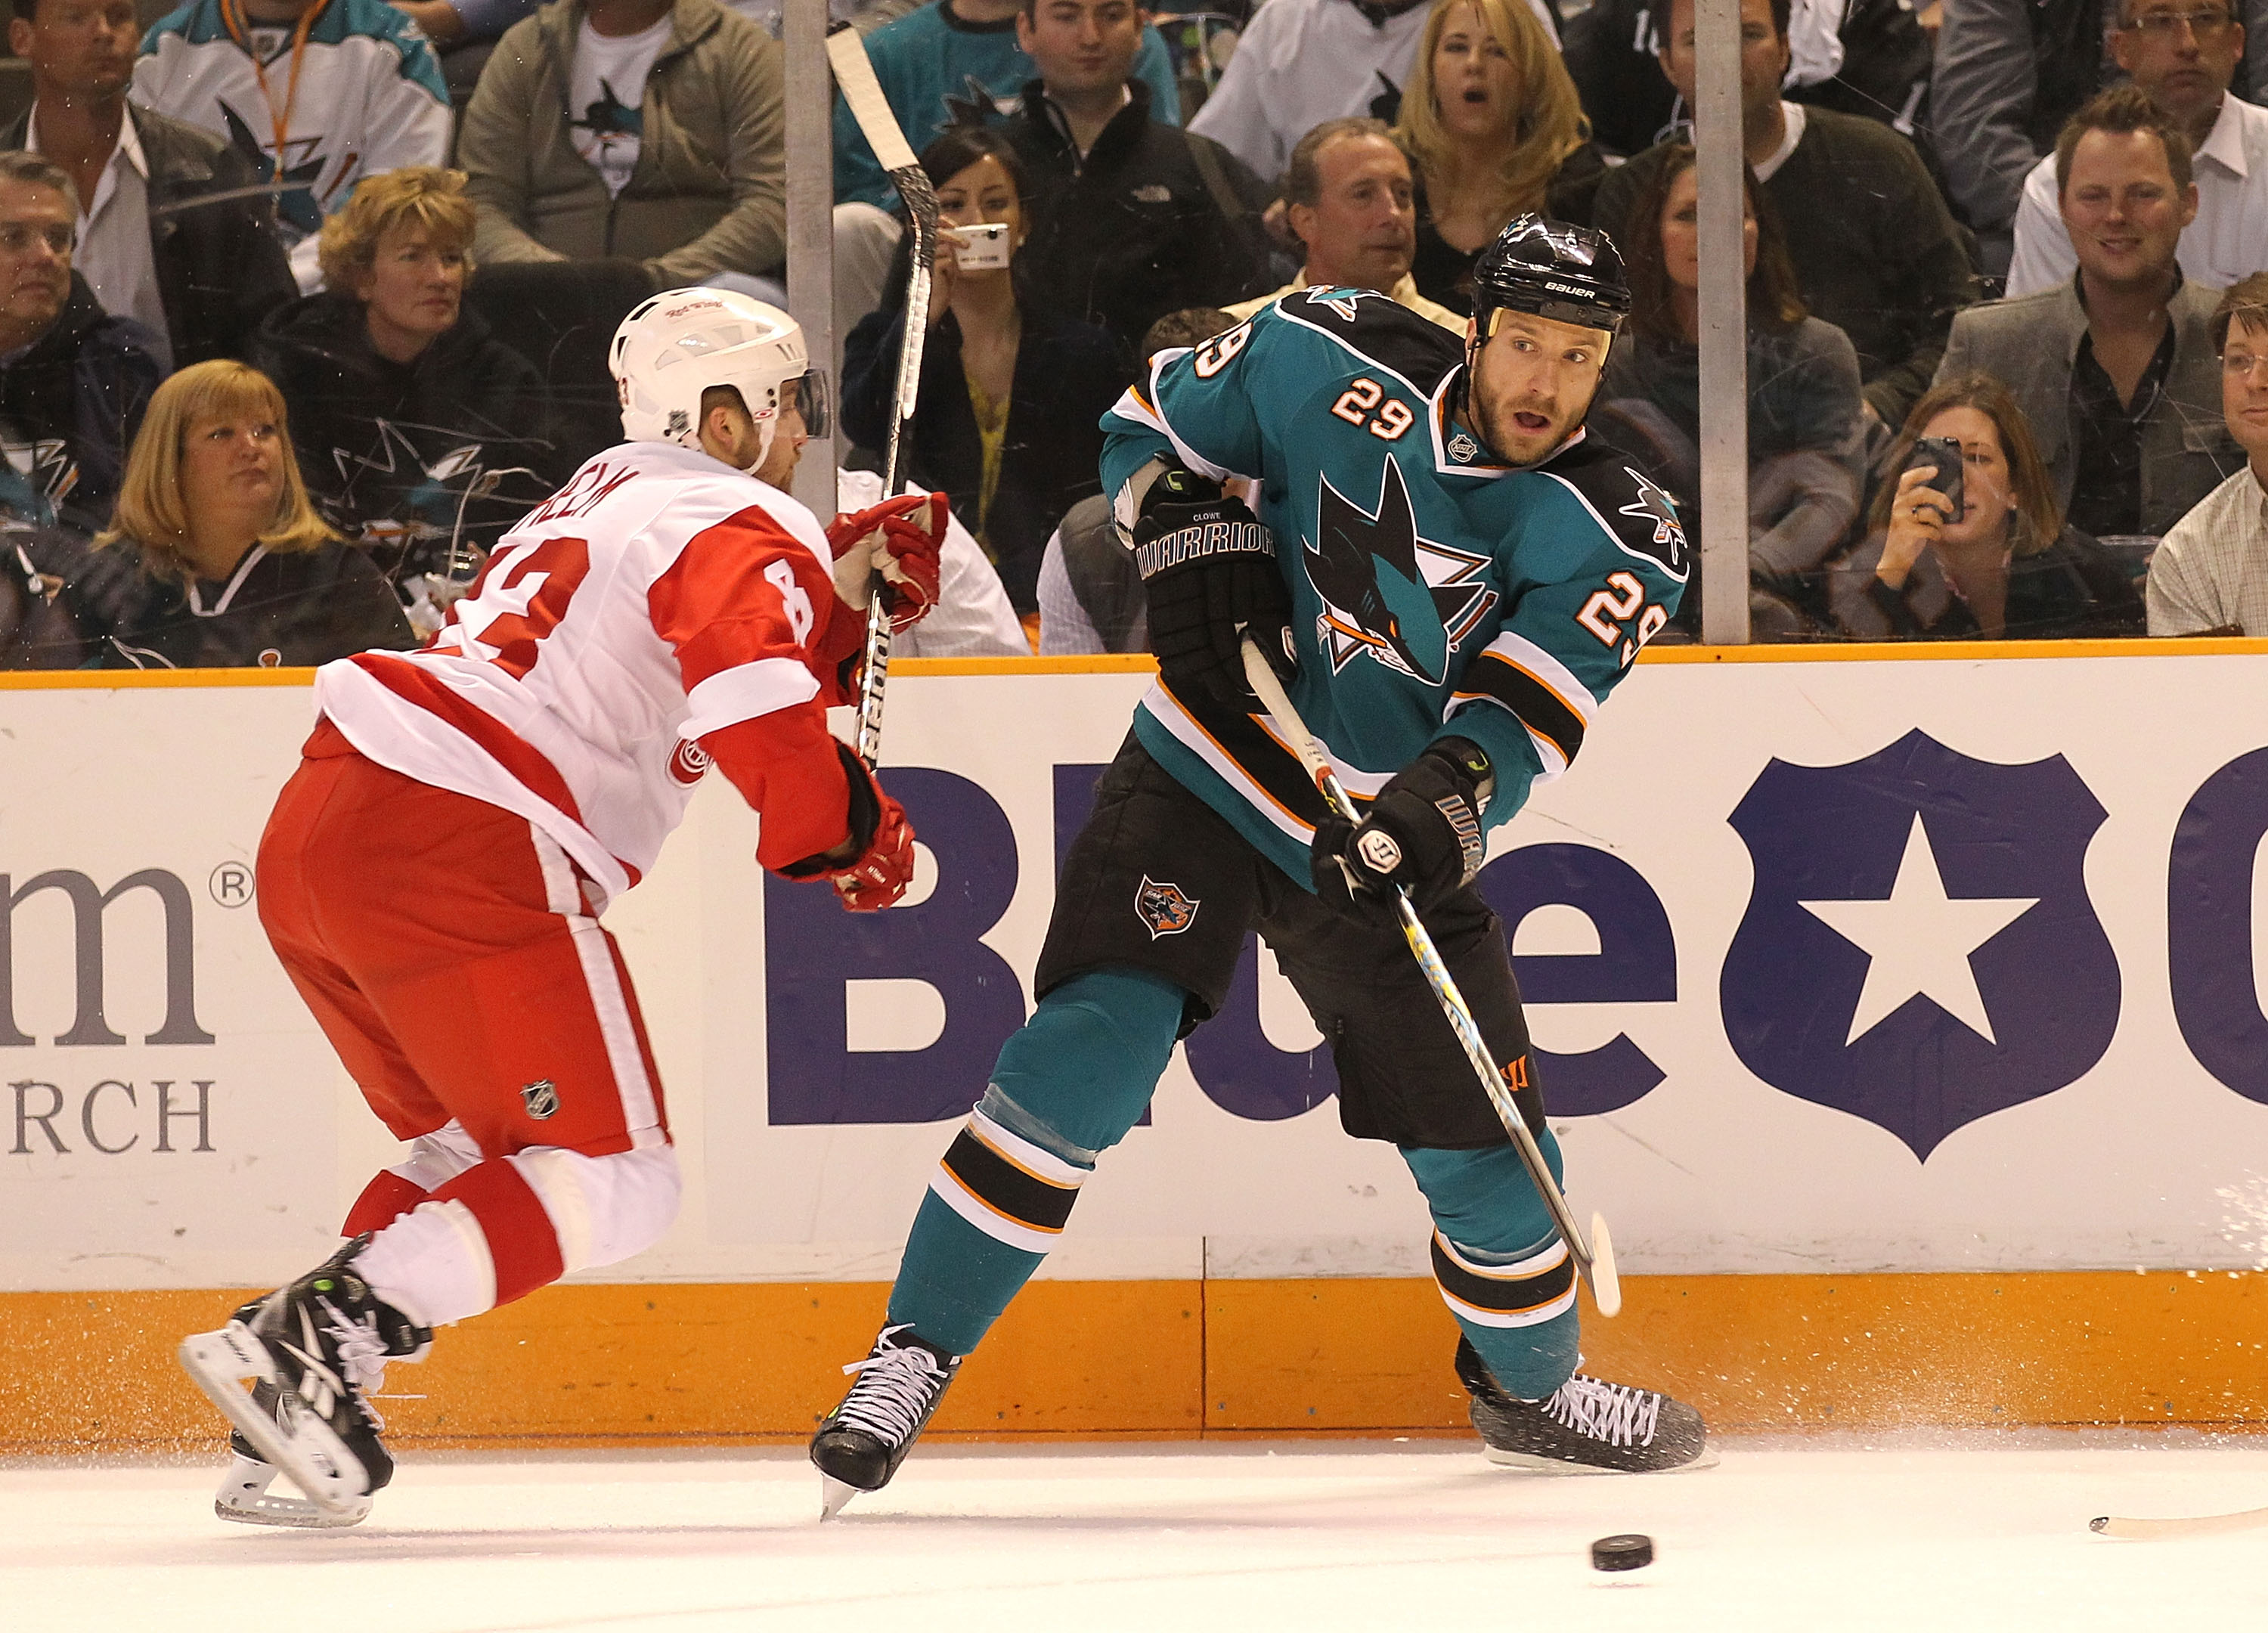 SAN JOSE, CA - MAY 8: Ryan Clowe #29 of the San Jose Sharks skates with the puck against Johan Franzen #93 of the Detroit Red Wings in Game Five of the Western Conference Semifinals during the 2010 NHL Stanley Cup Playoffs at HP Pavilion on May 8, 2010 in